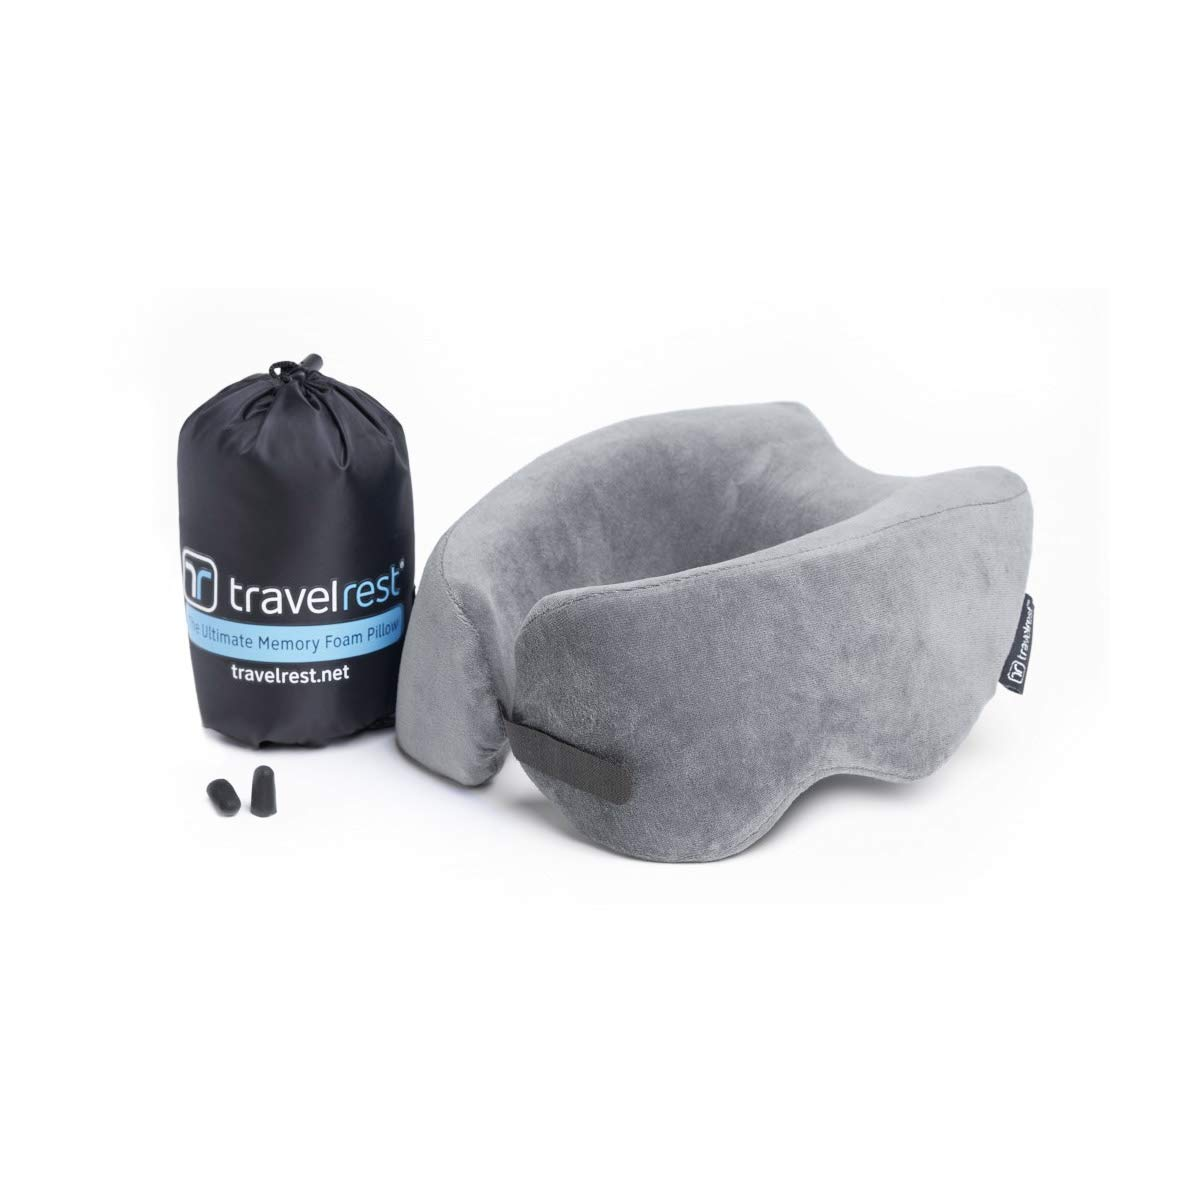 Travelrest Ultimate Memory Foam Travel Pillow / Neck Pillow - Therapeutic, Ergonomic & Patented - Washable Cover - Most Comfortable Neck Pillow - Compresses to 1/4 of its Size (2 Year Warranty) (Grey)